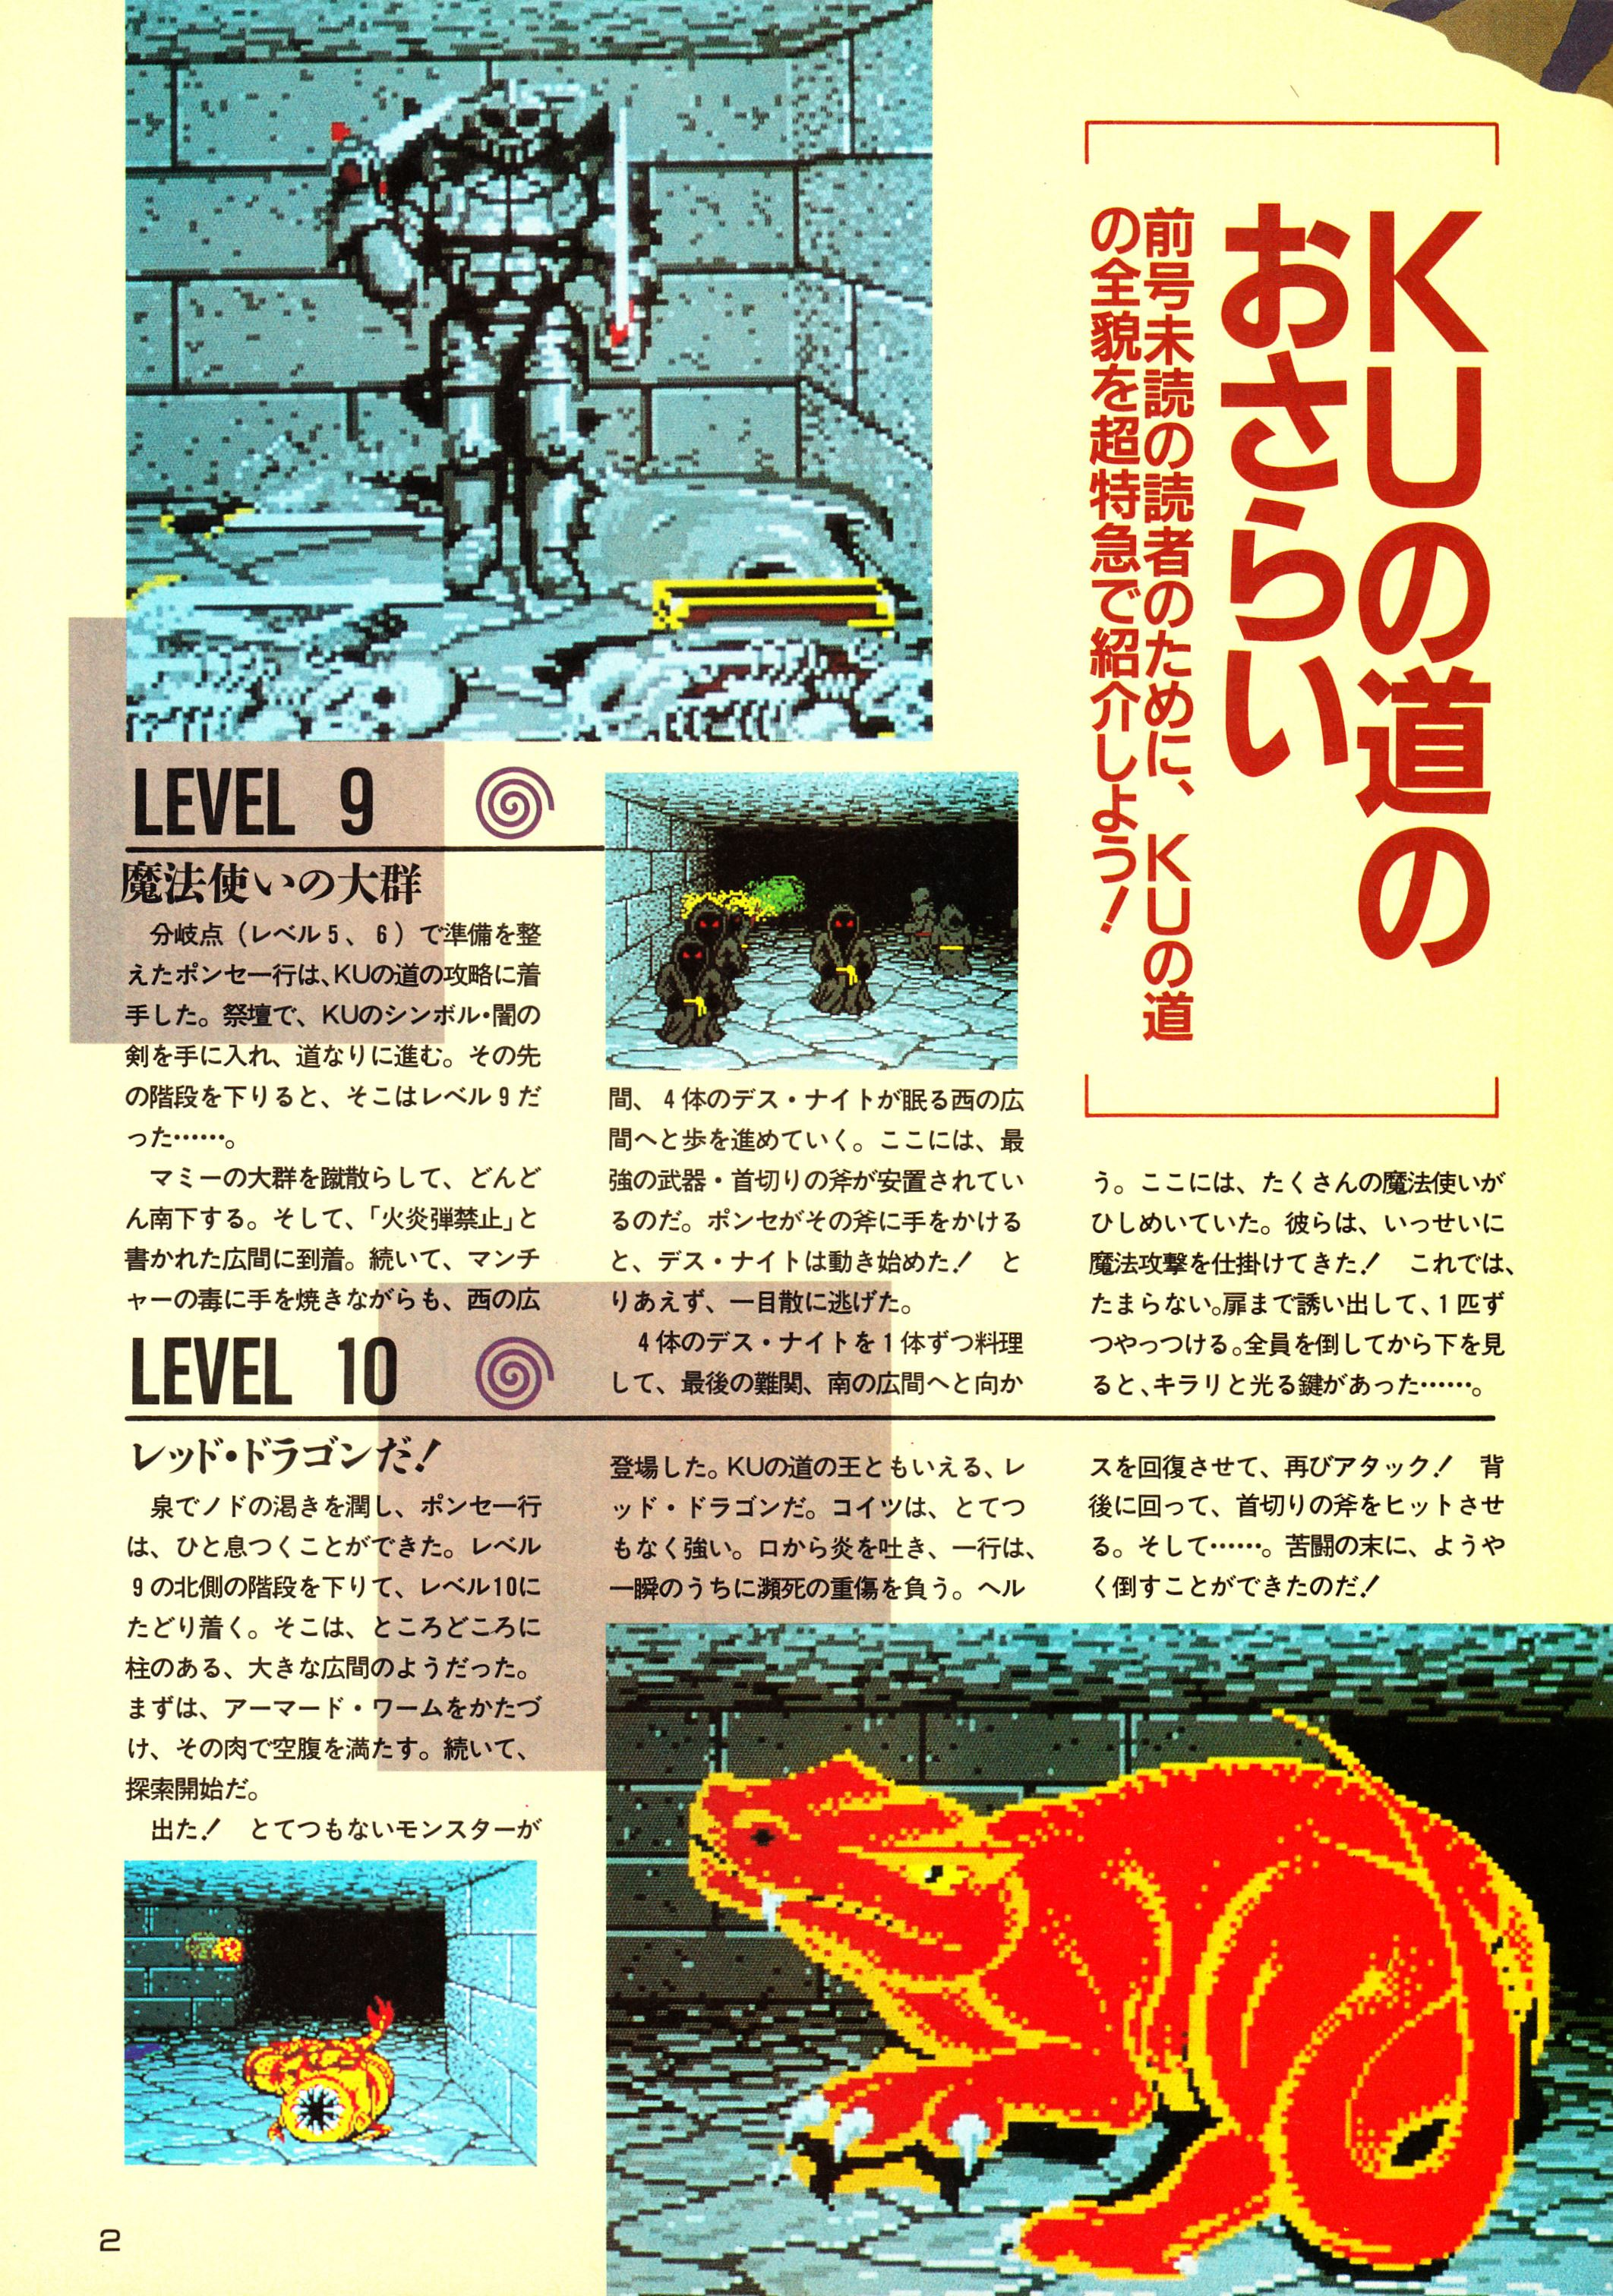 Supplement - Chaos Strikes Back Companion Guide II Guide published in Japanese magazine 'Popcom', Vol 9 No 3 01 March 1991, Page 4